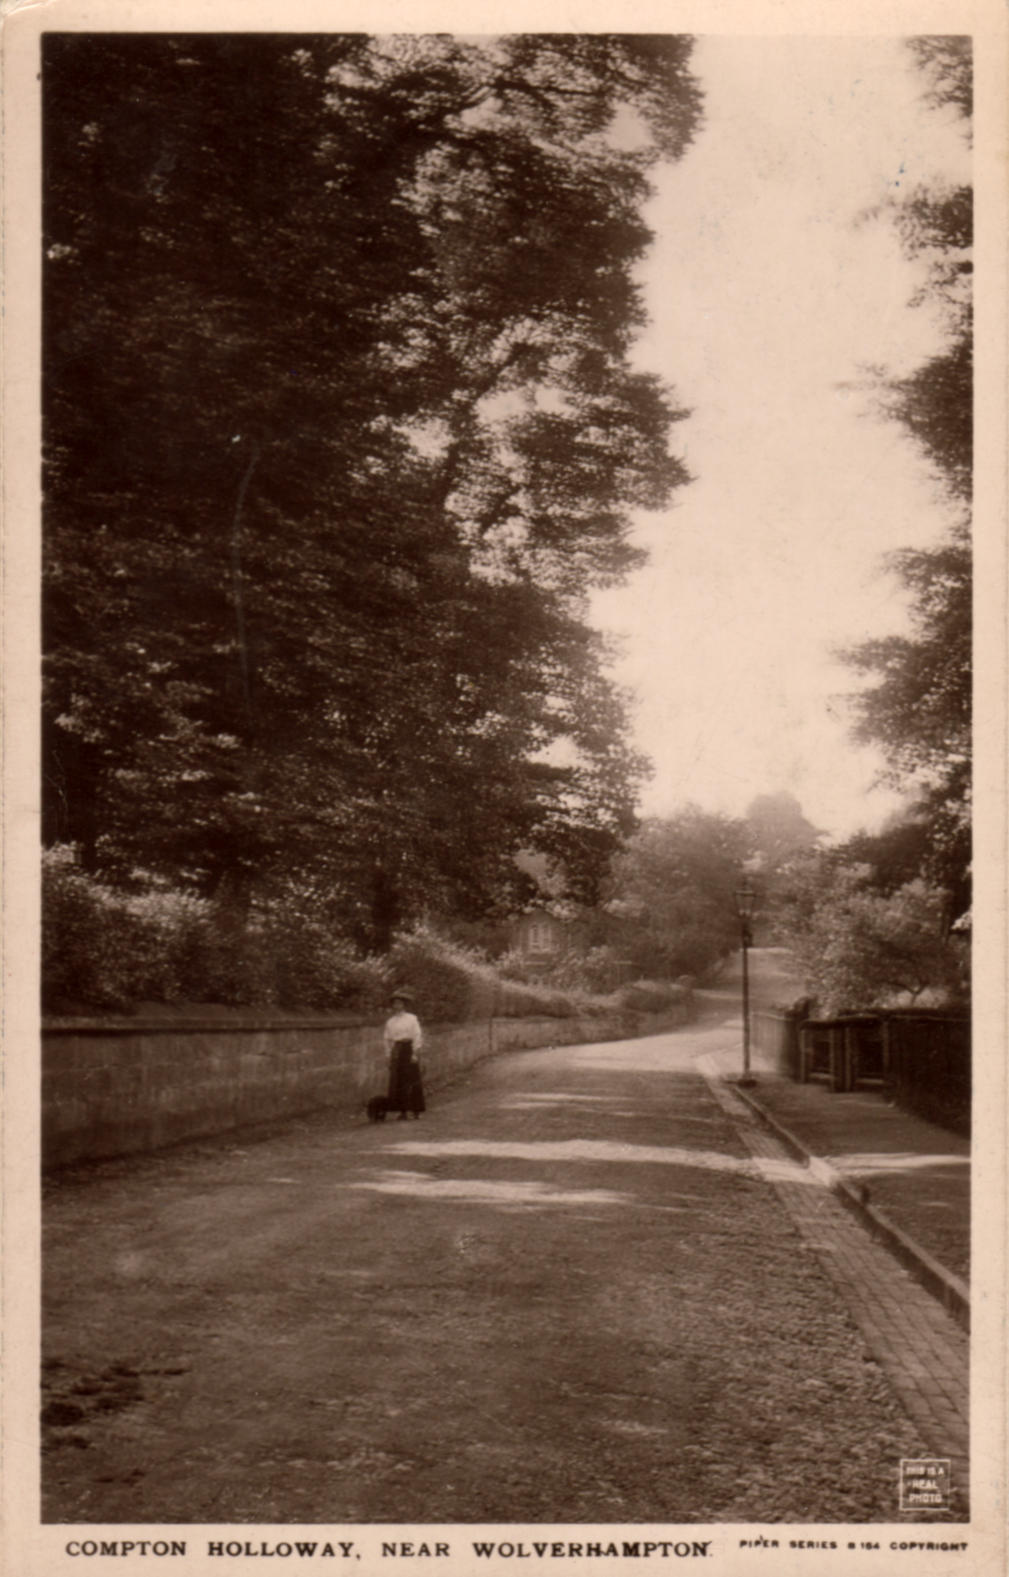 Compton Holloway, near Wolverhampton